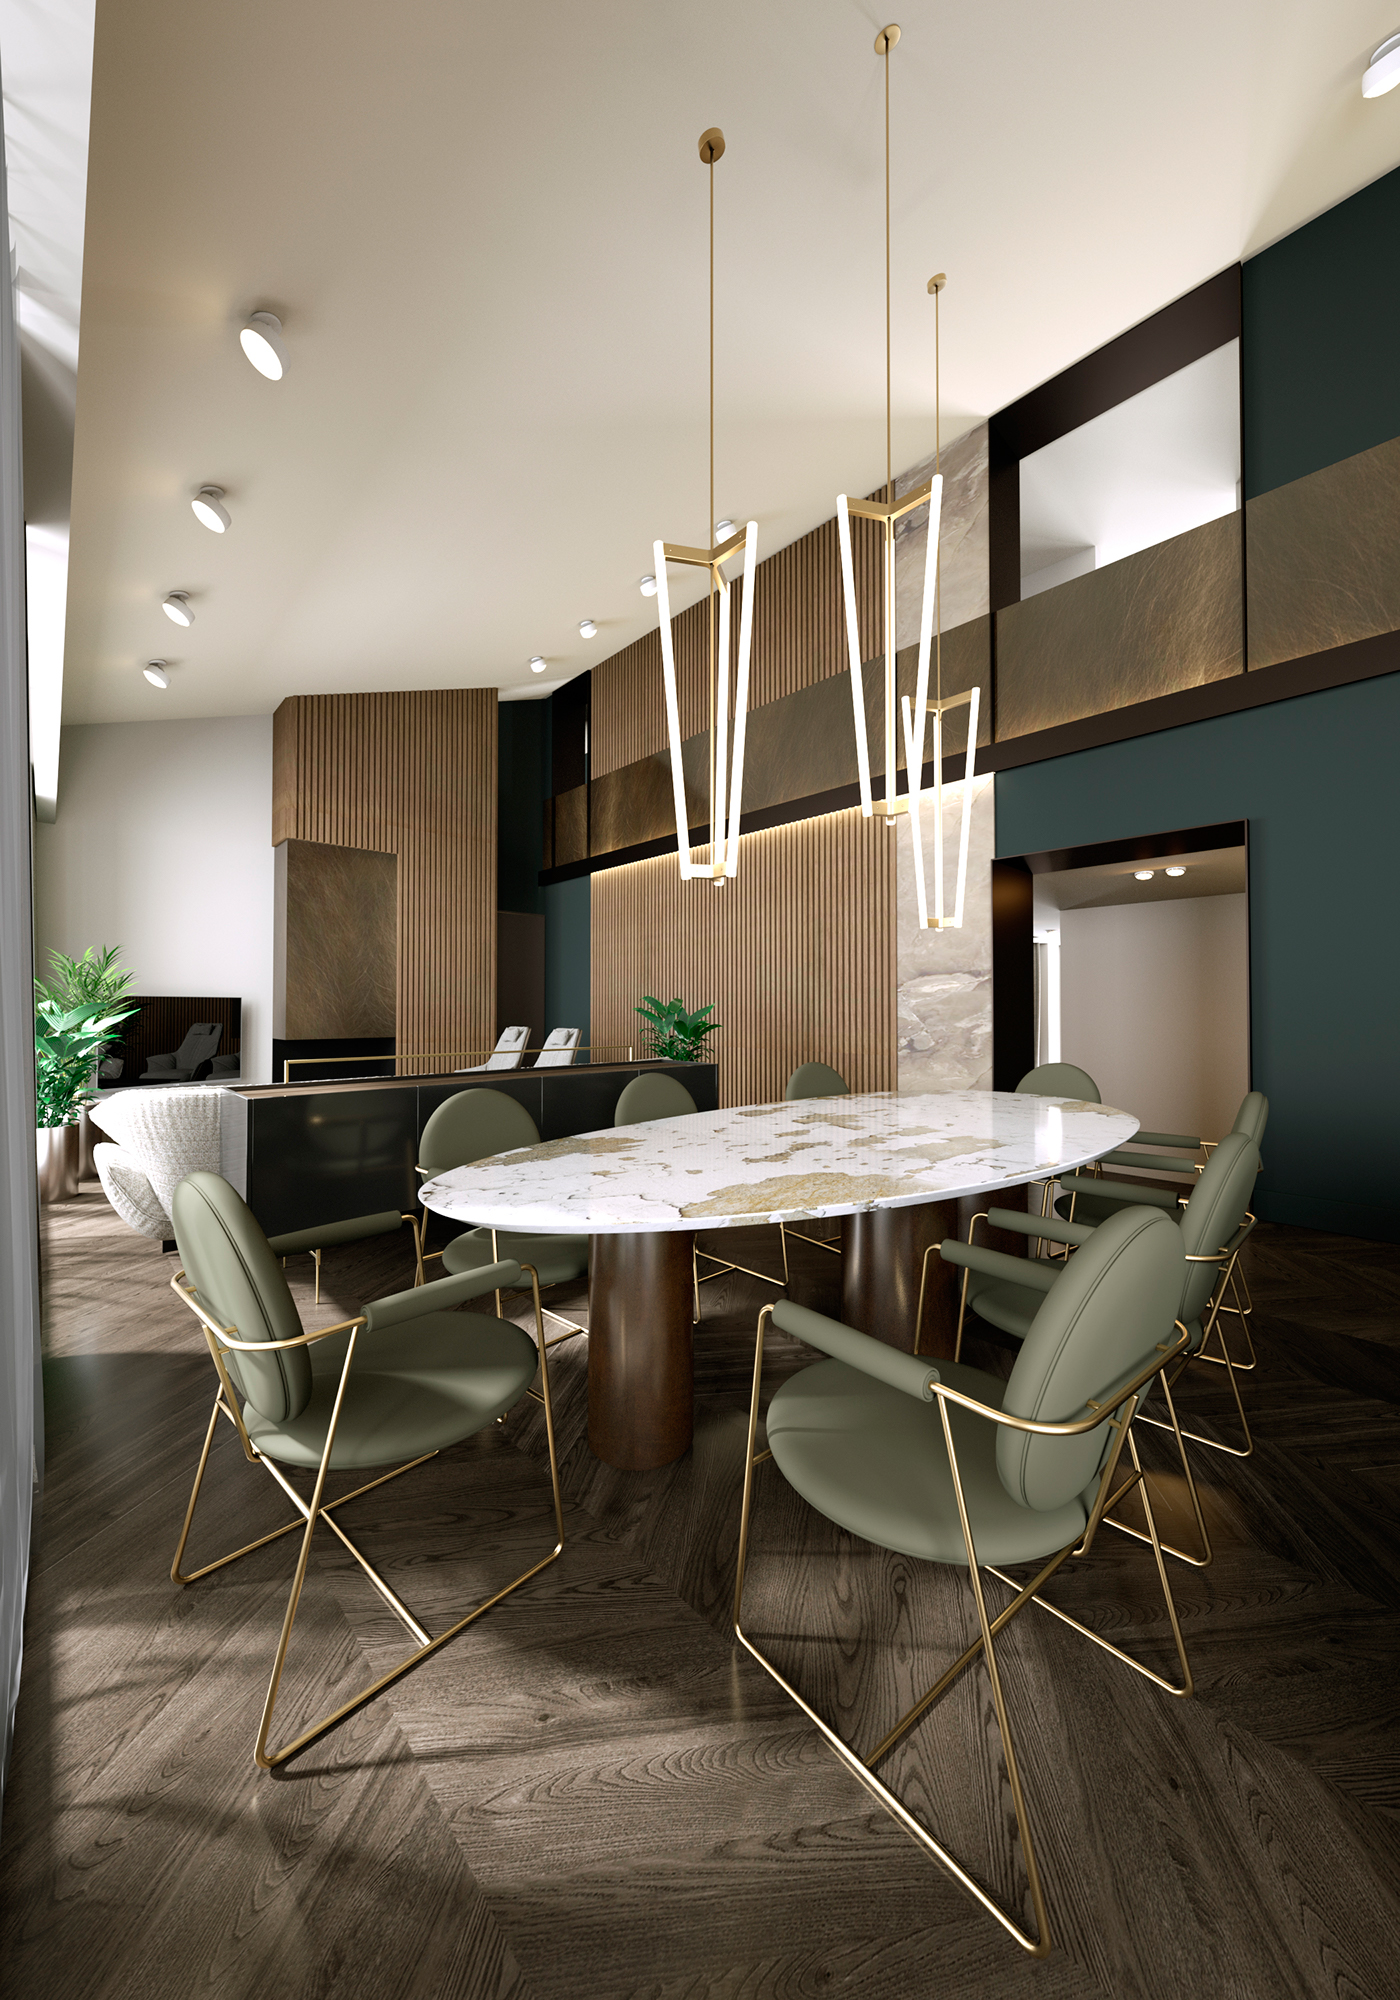 235 best dining concepts images on pinterest dining room 235 best dining concepts images on pinterest dining room modern interiors and dining rooms